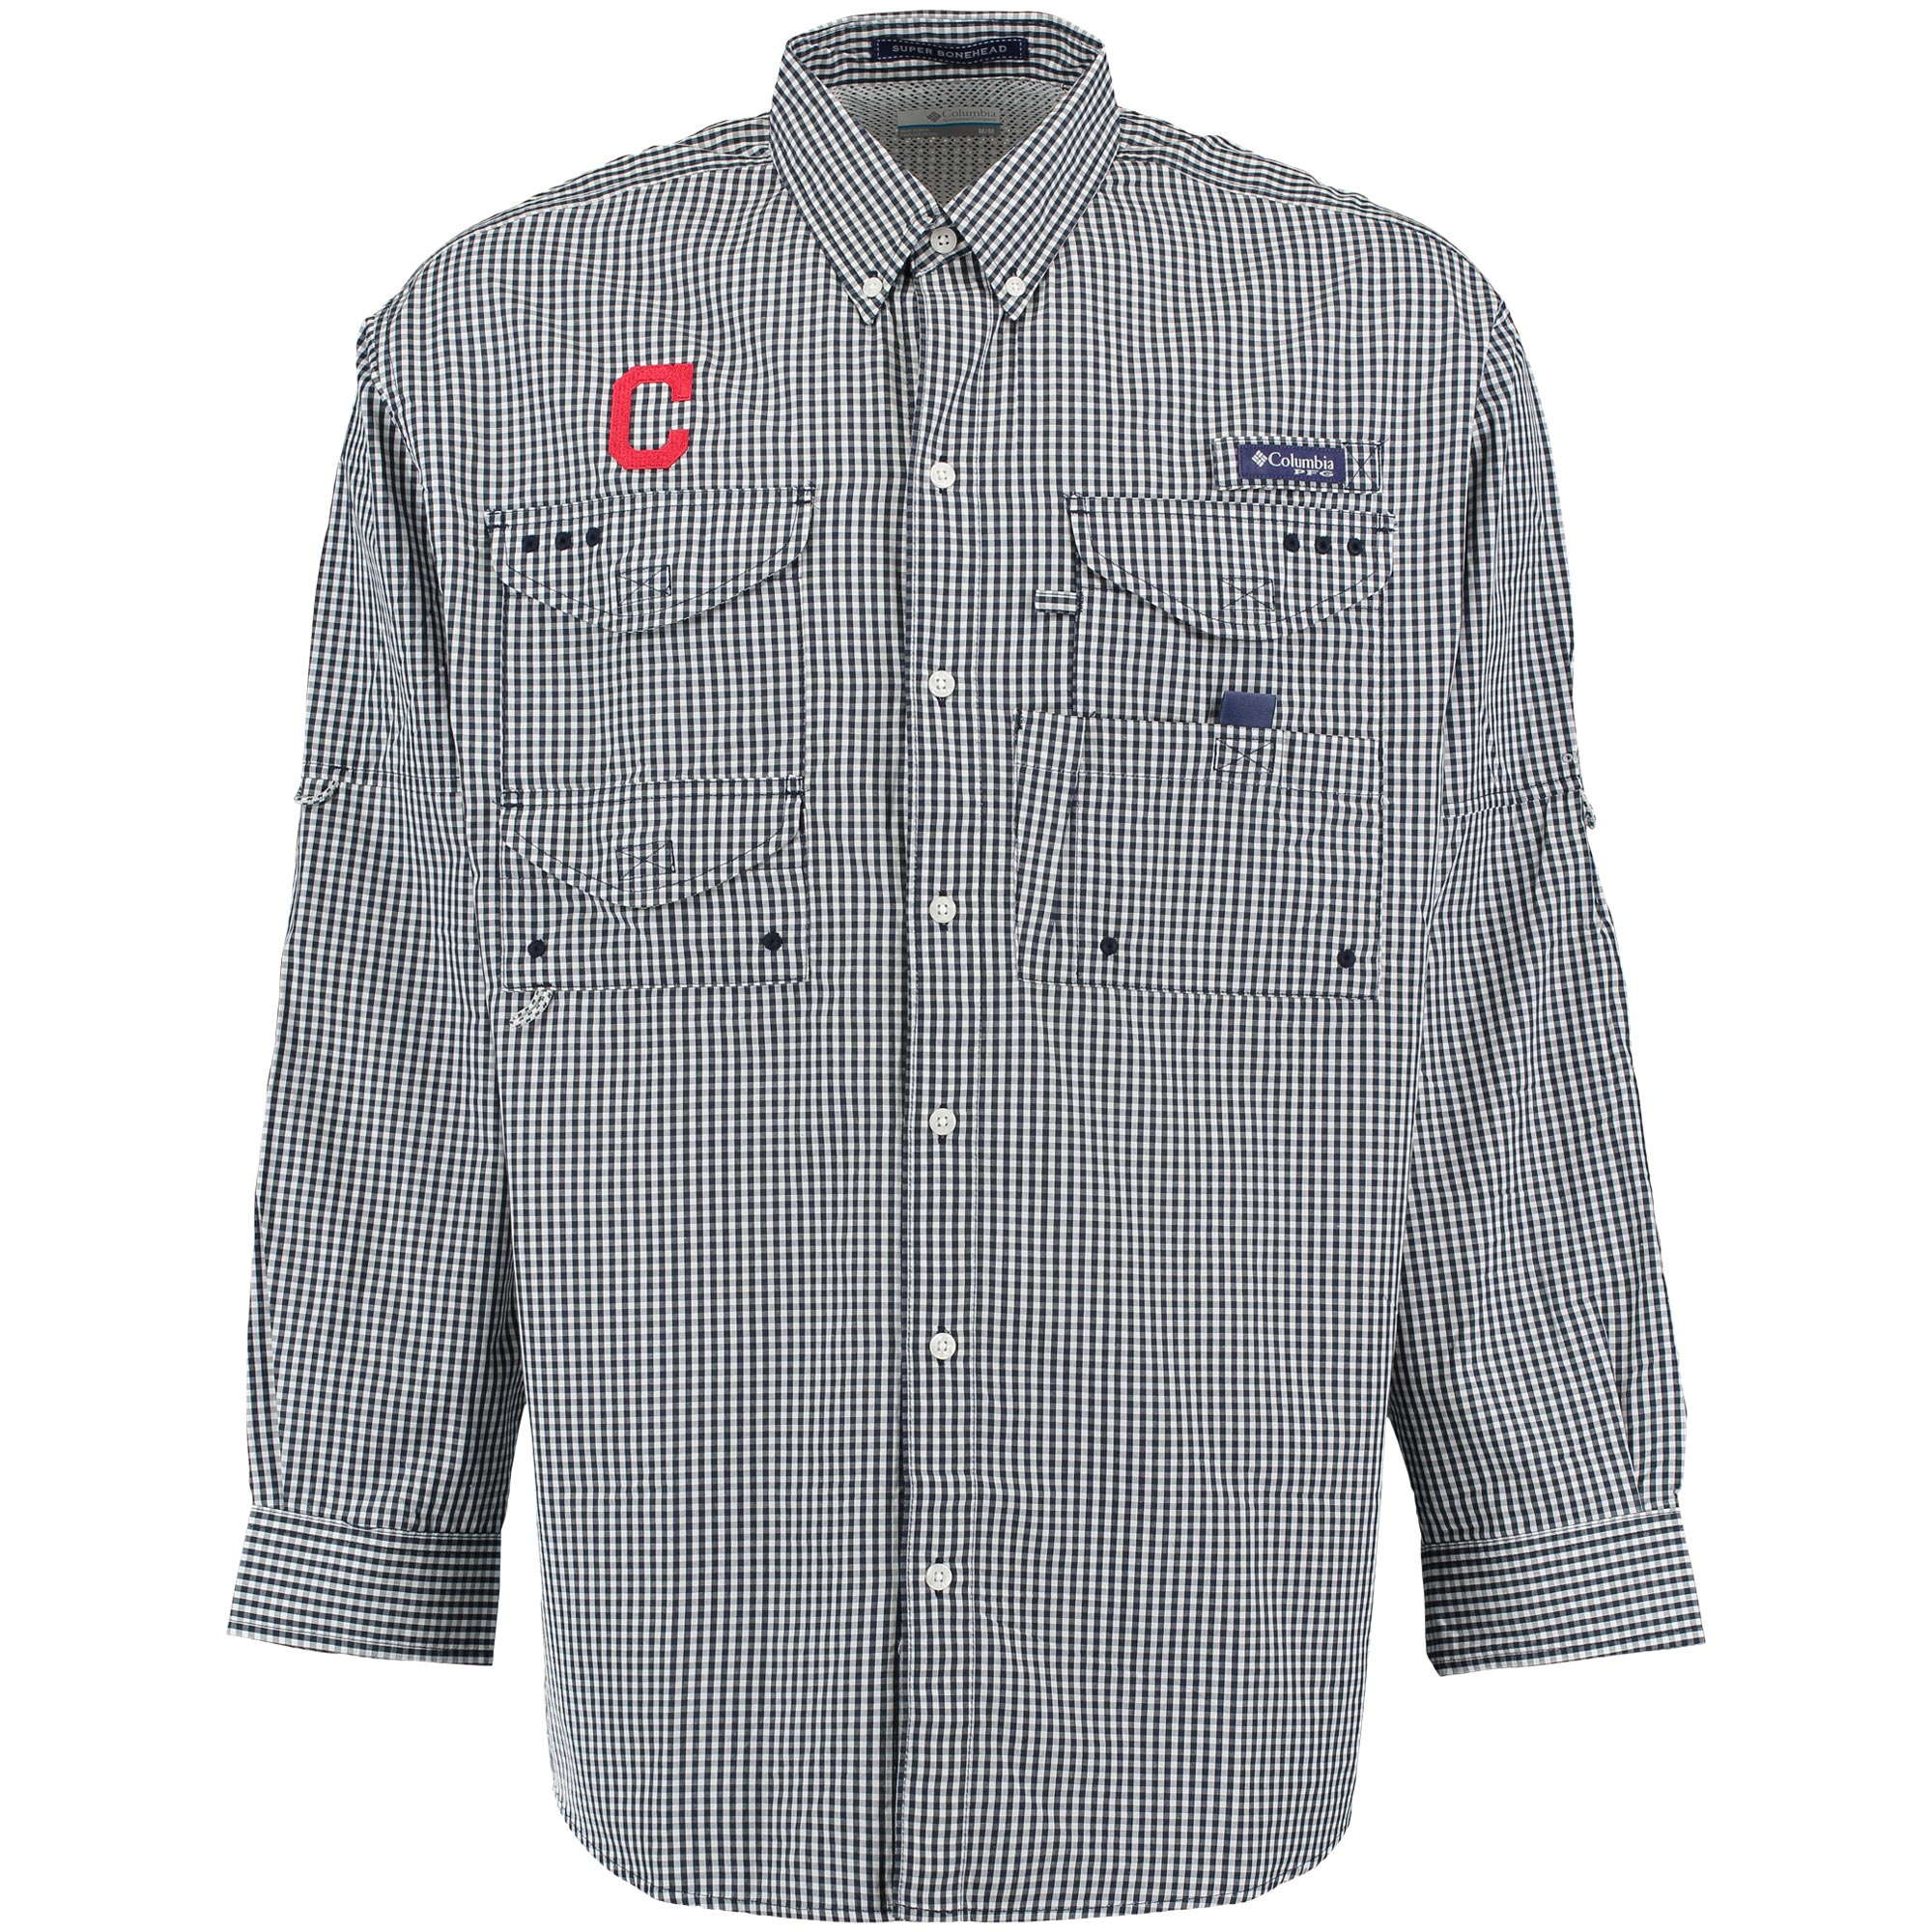 Cleveland Indians Columbia Super Bonehead Omni-Shade Long Sleeve Shirt - Navy